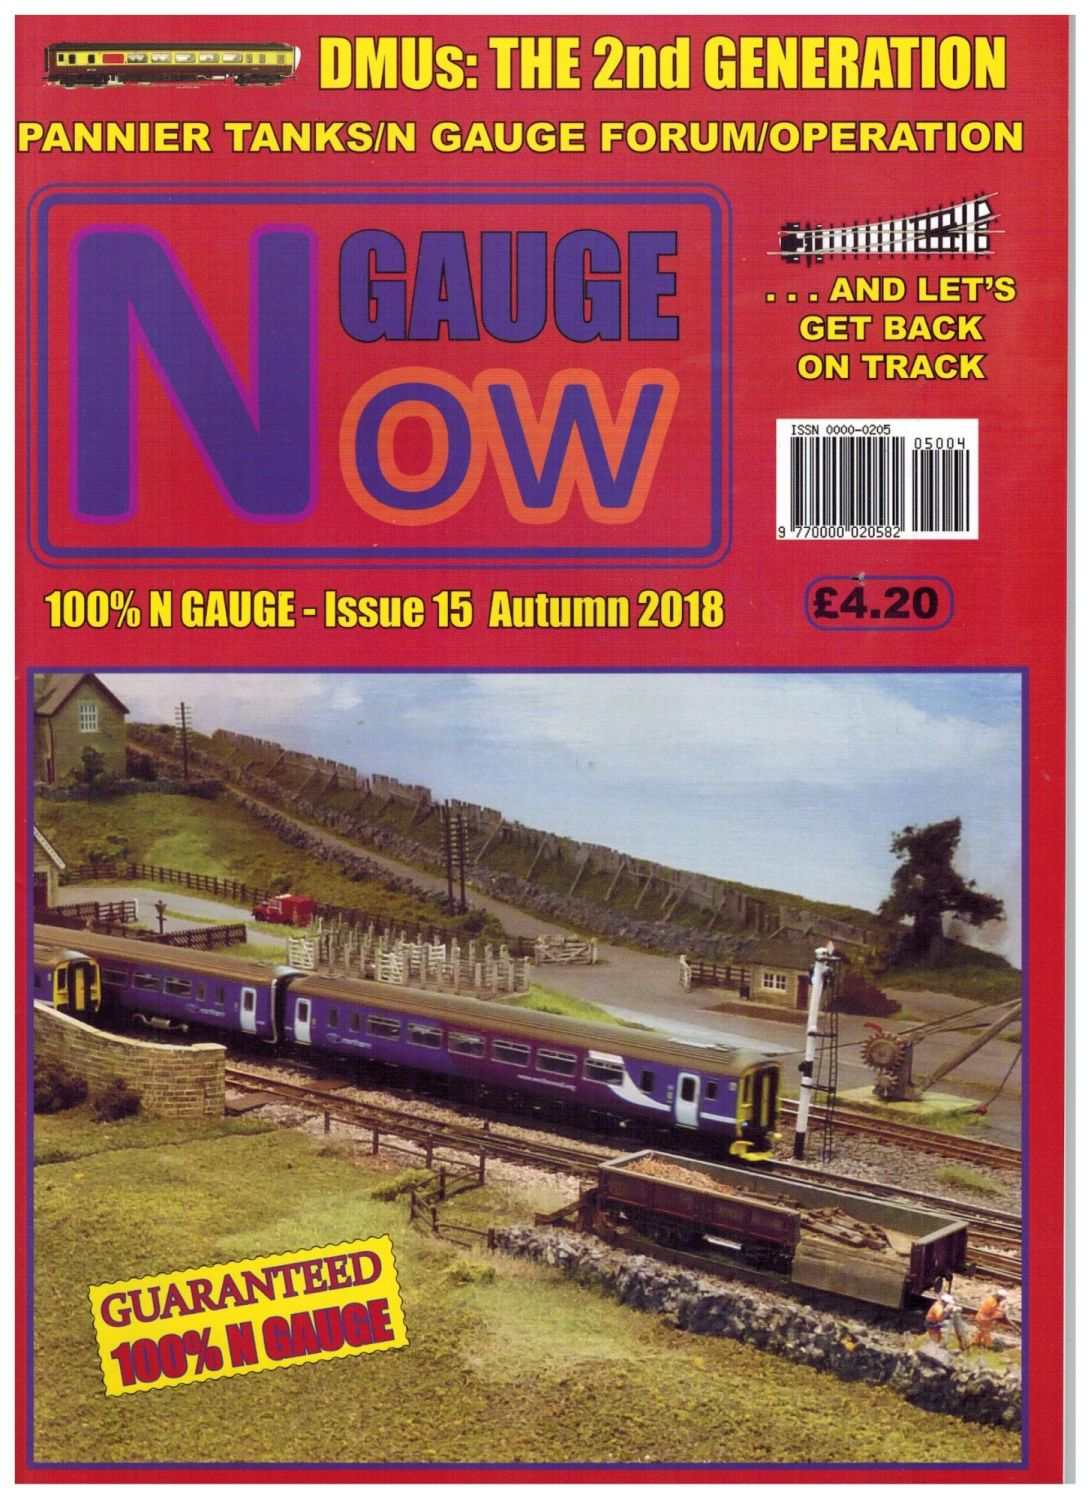 N GAUGE NOW - Issue 15 (Autumn 2018)